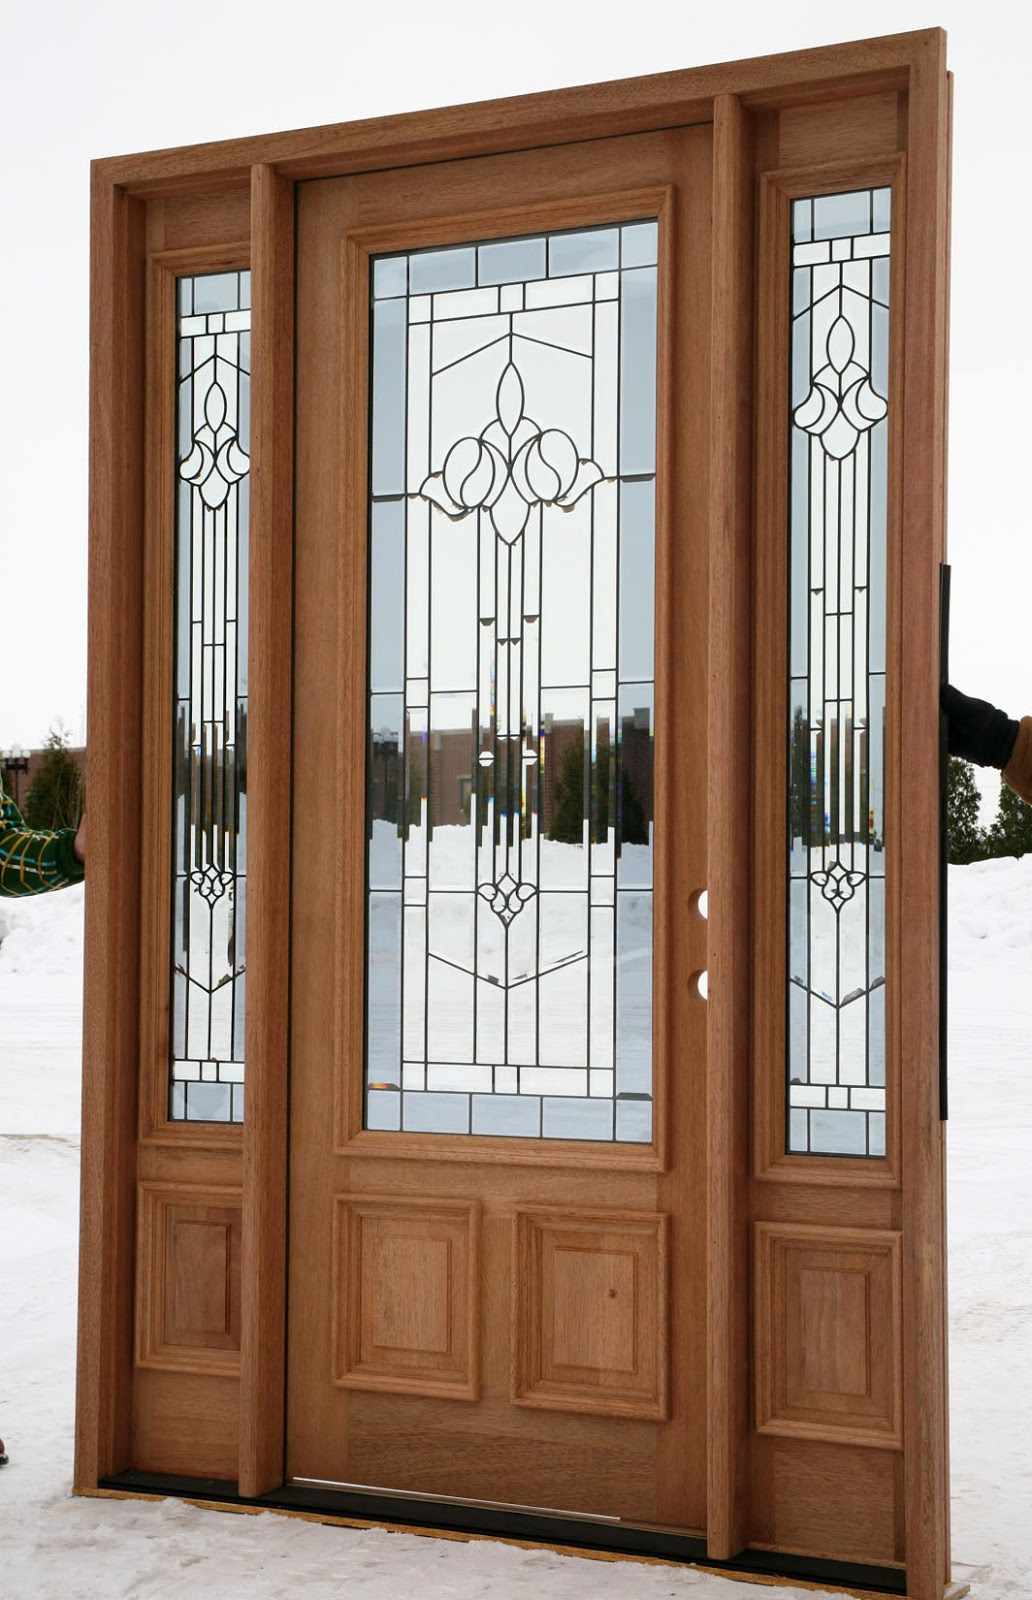 5 front entry doors with sidelights ideas instant knowledge On entry doors with sidelights